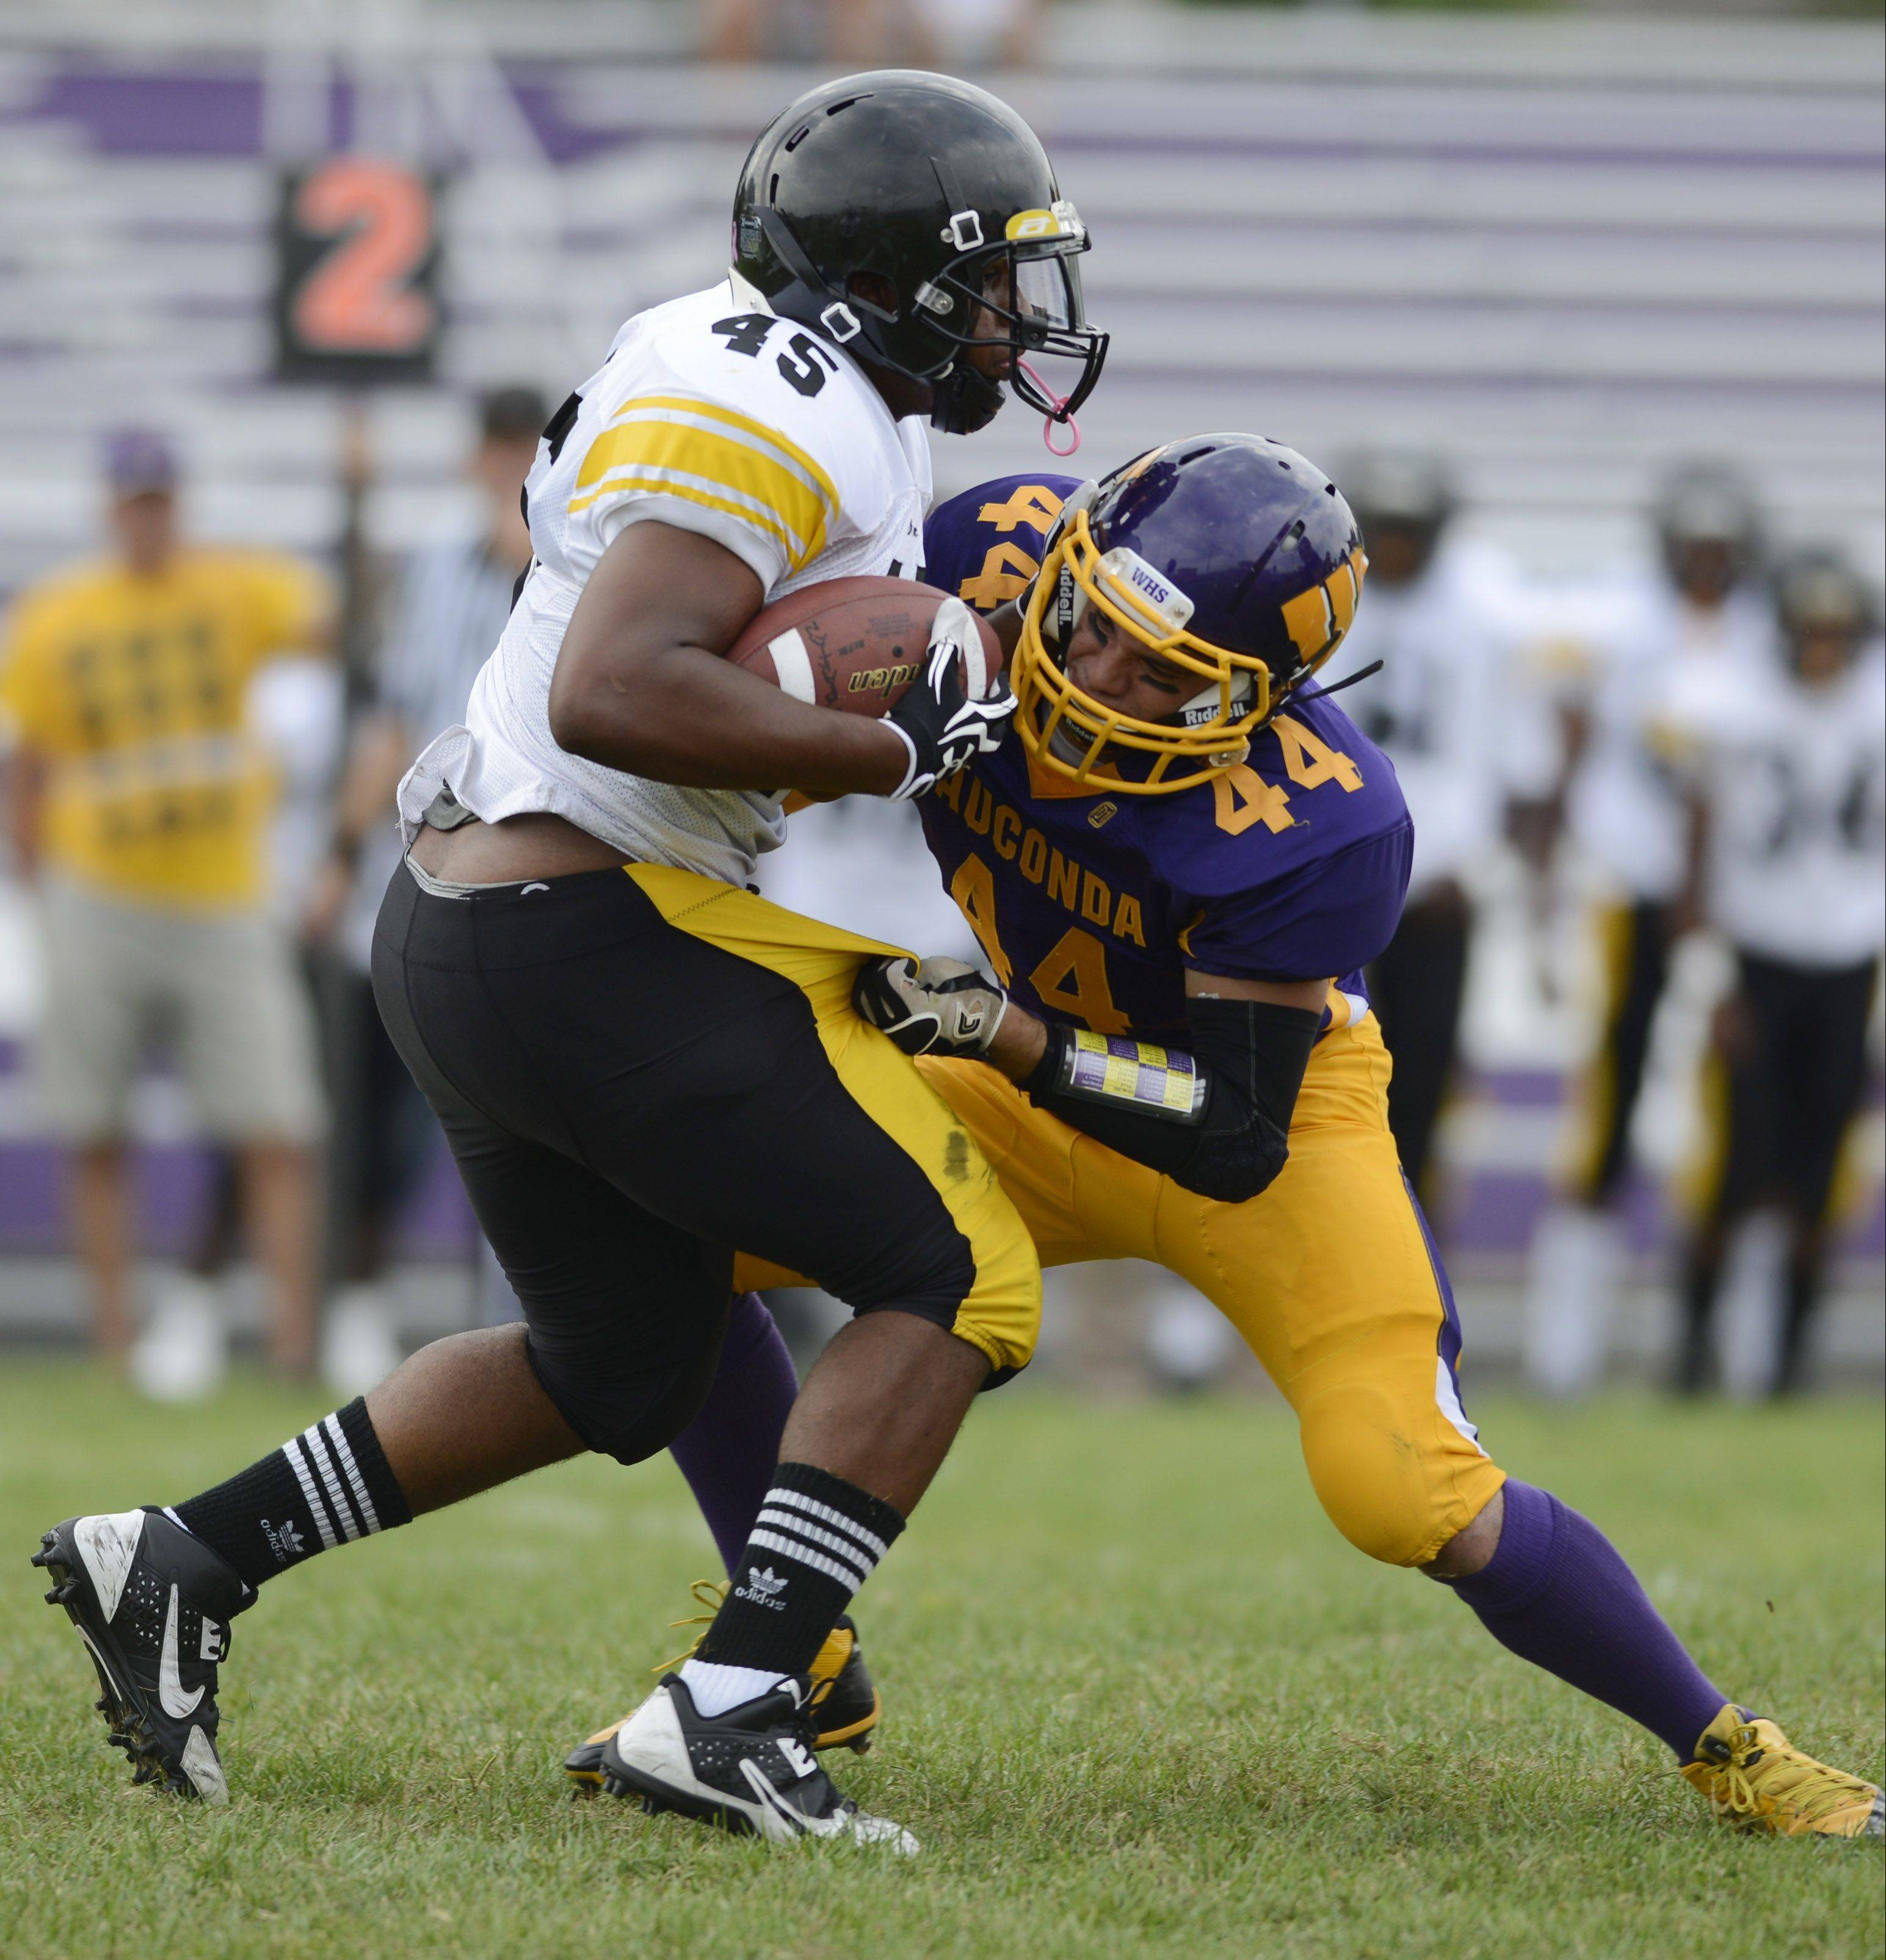 Wauconda's Michael Prate, right, tackles Orr's Daniel Sanja